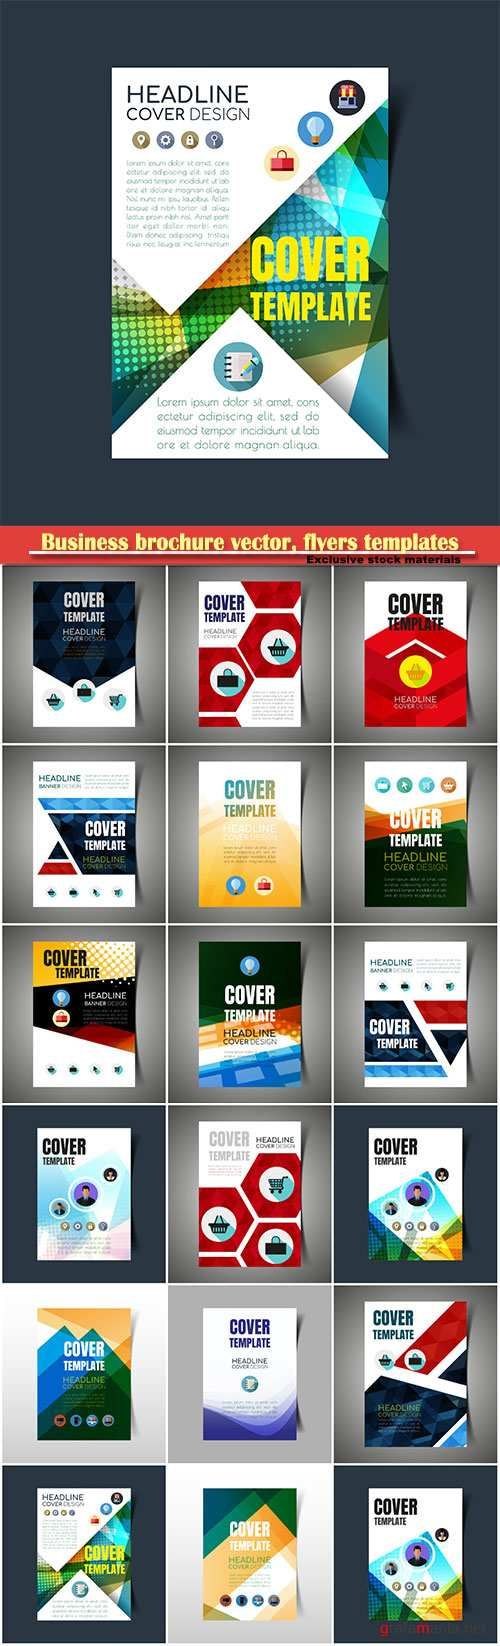 Business brochure vector, flyers templates, report cover design # 81